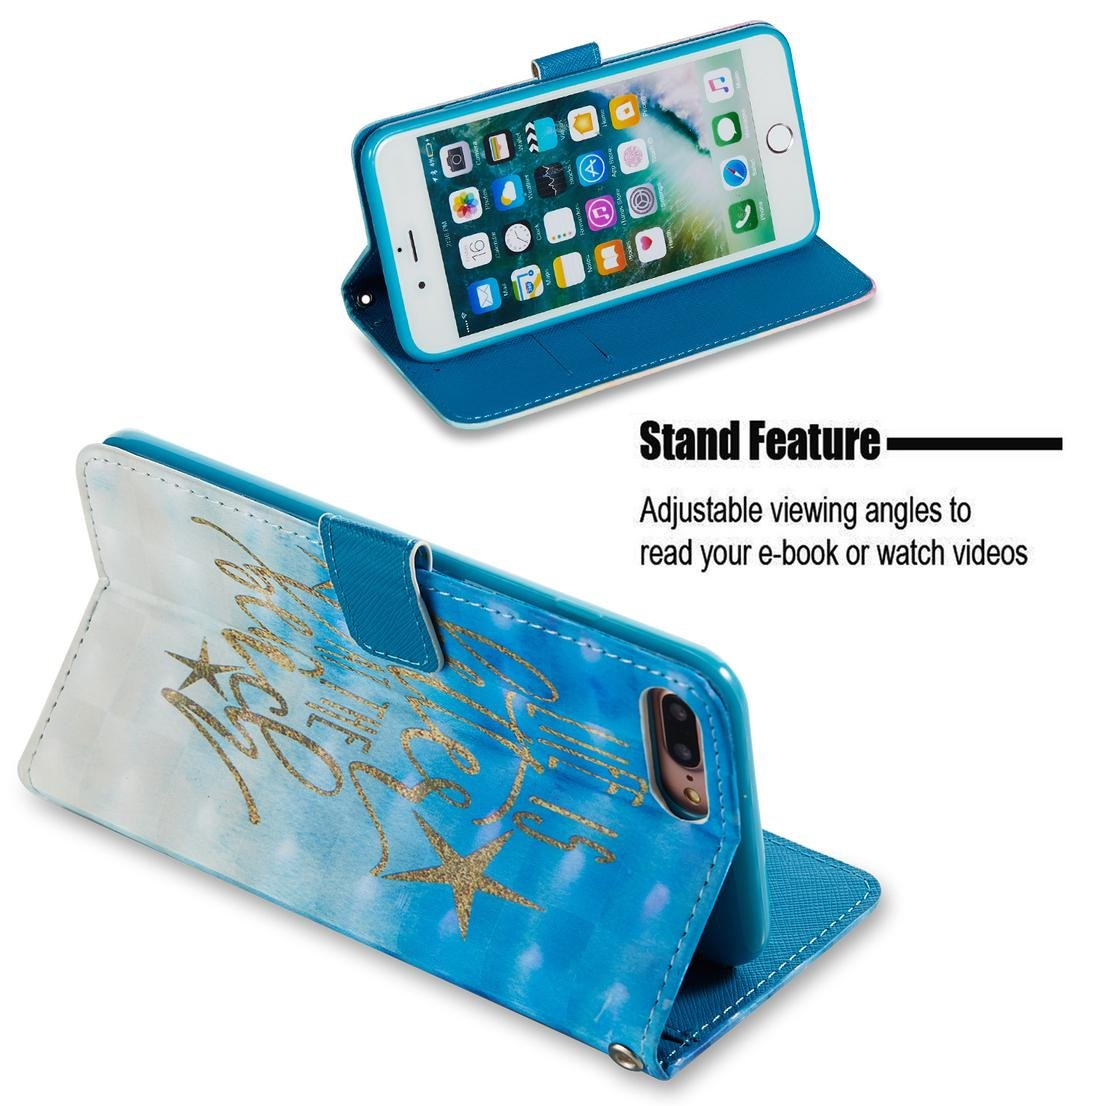 Amazon.com : iPhone 7 Plus Case/iPhone 8 Plus Case, Durable Slim Wallet Case Cover Pu Leather Lightweight Card Holder Shock Proof Wrist Strap Kickstand Flip ...